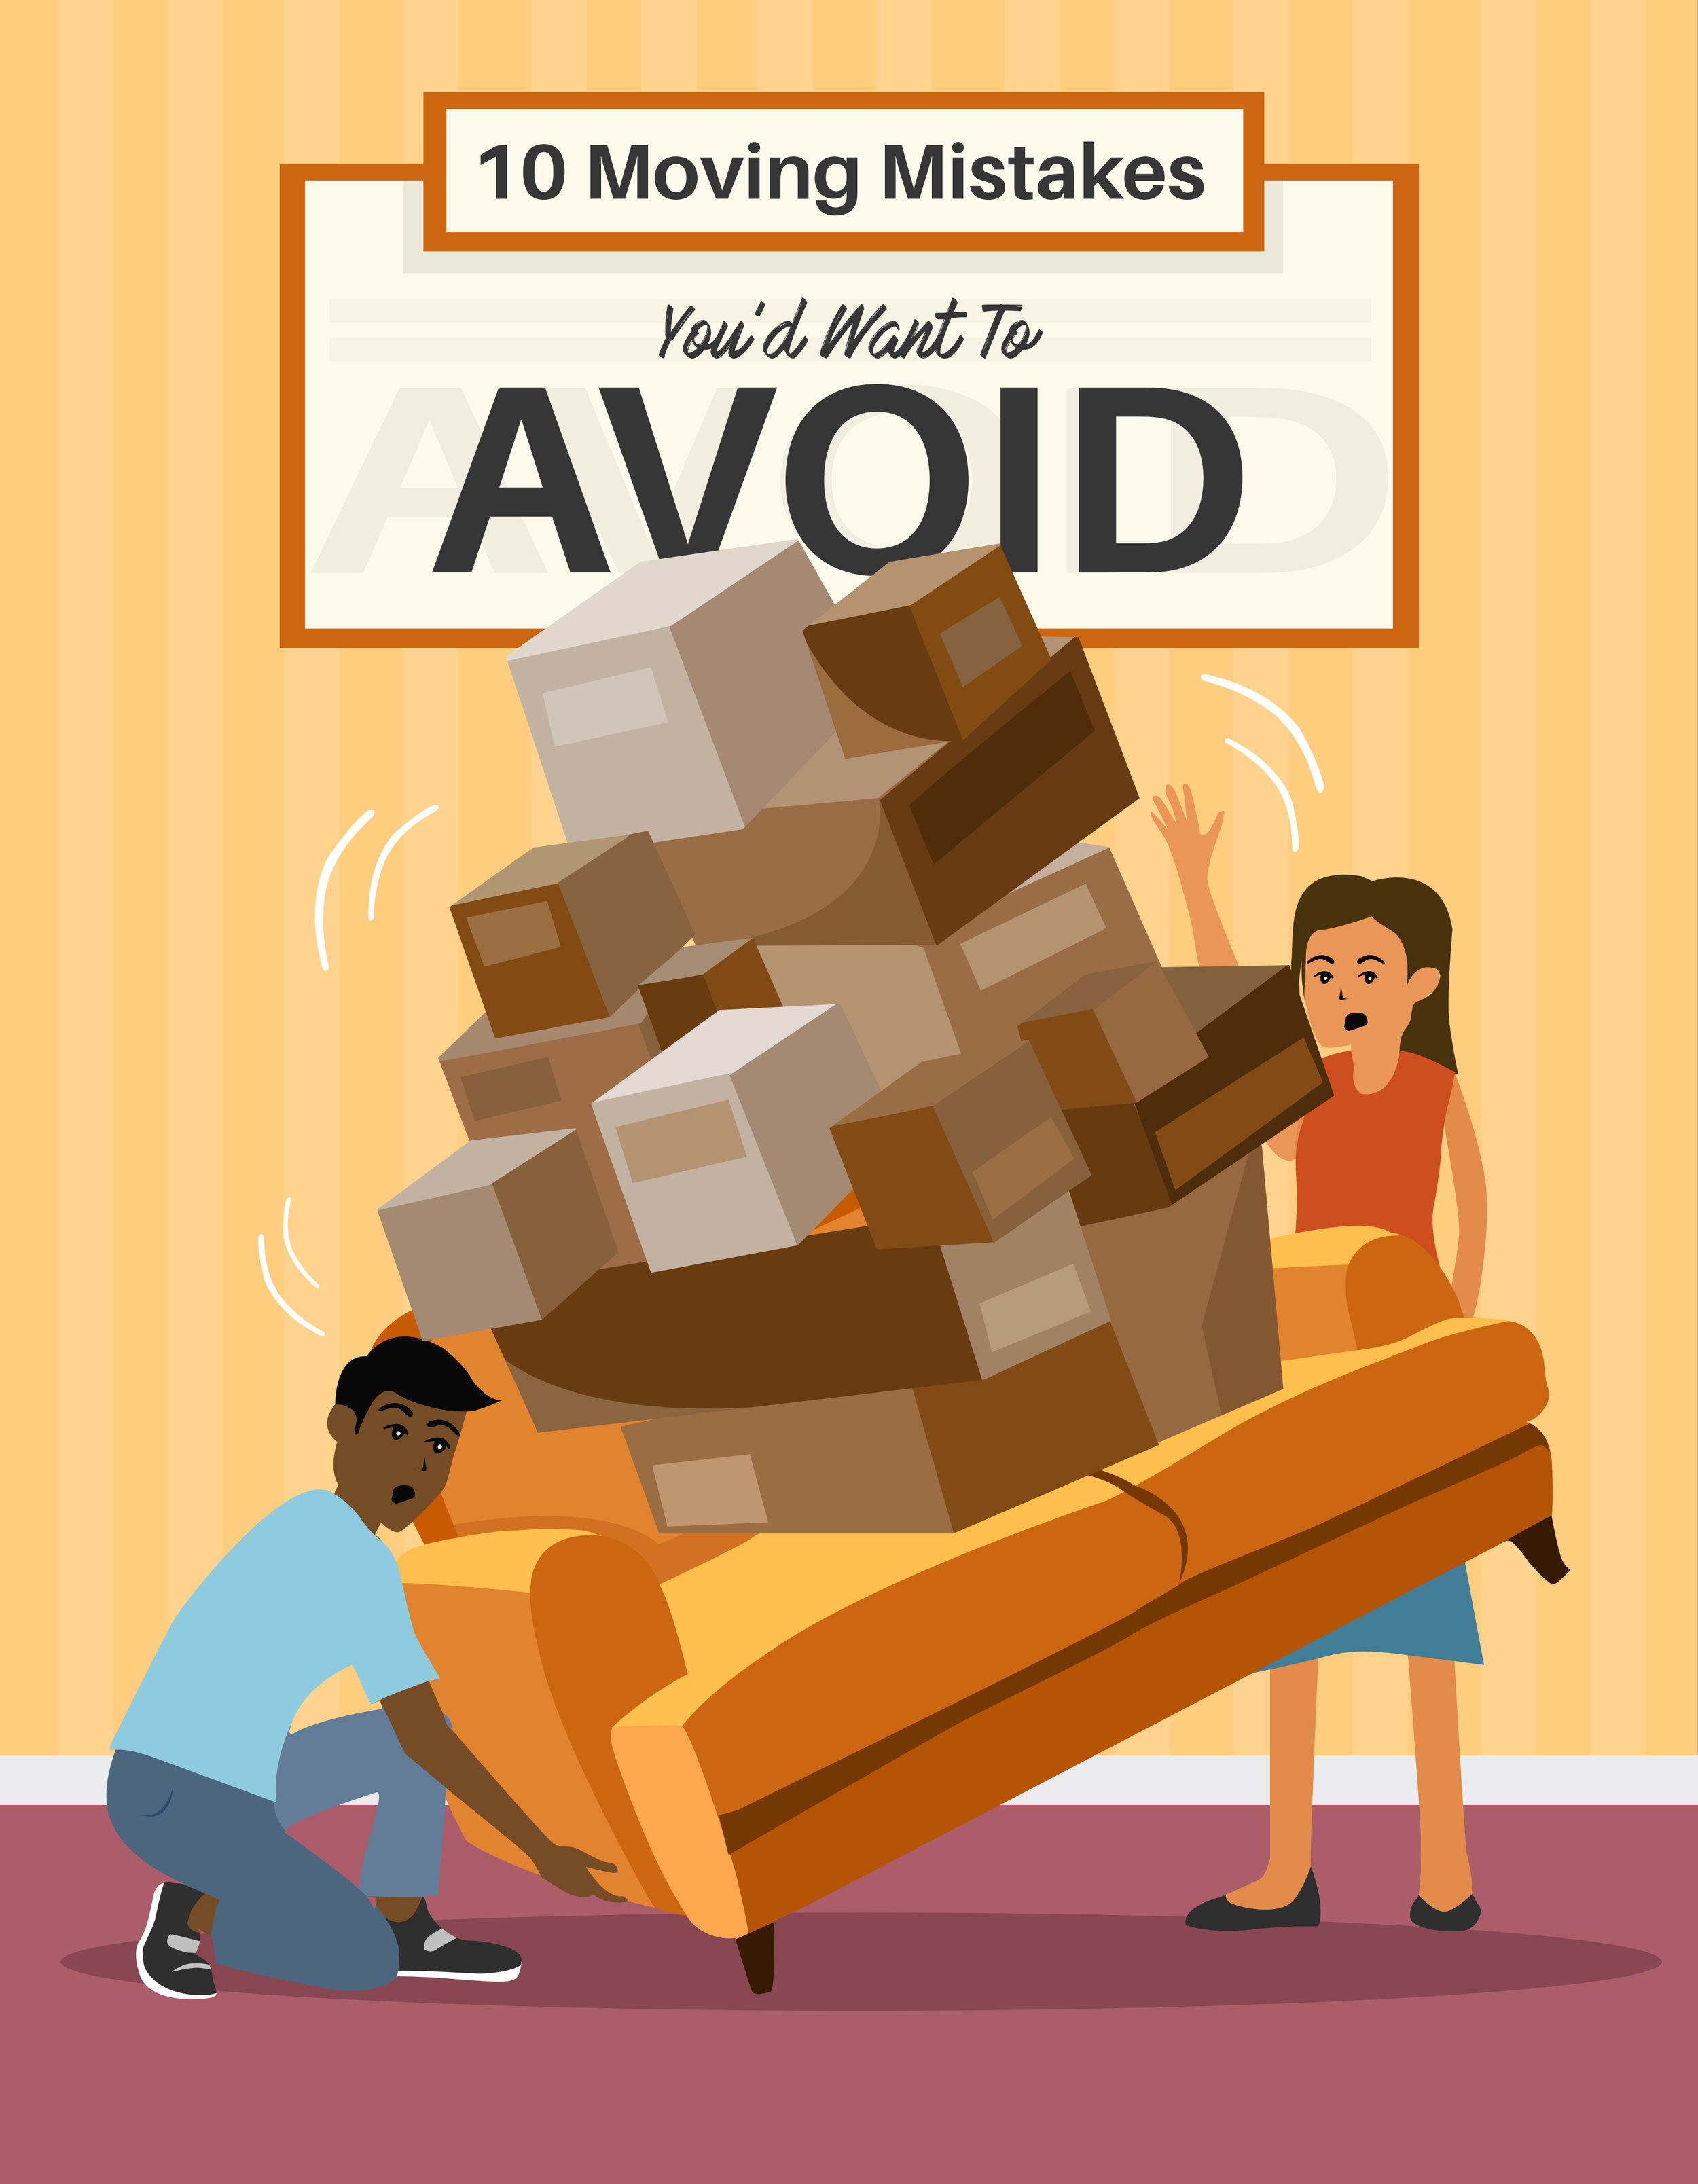 10 Moving Mistakes You'd Want To Avoid.jpg